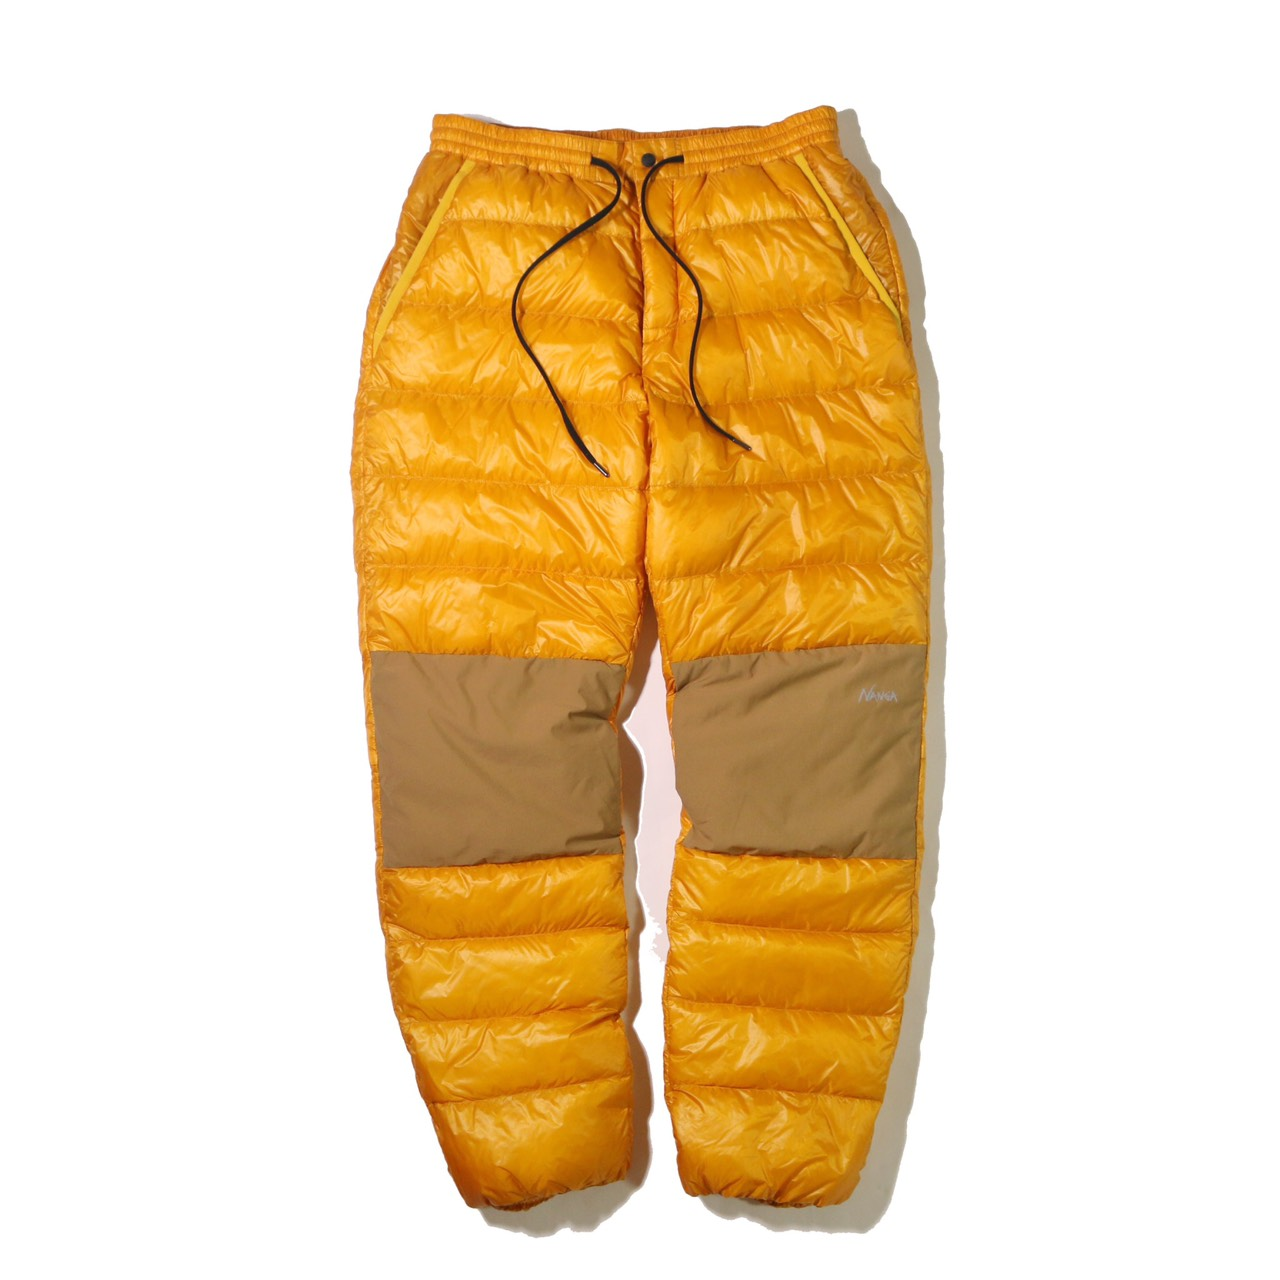 MOUNTAIN LODGE DOWN PANTS